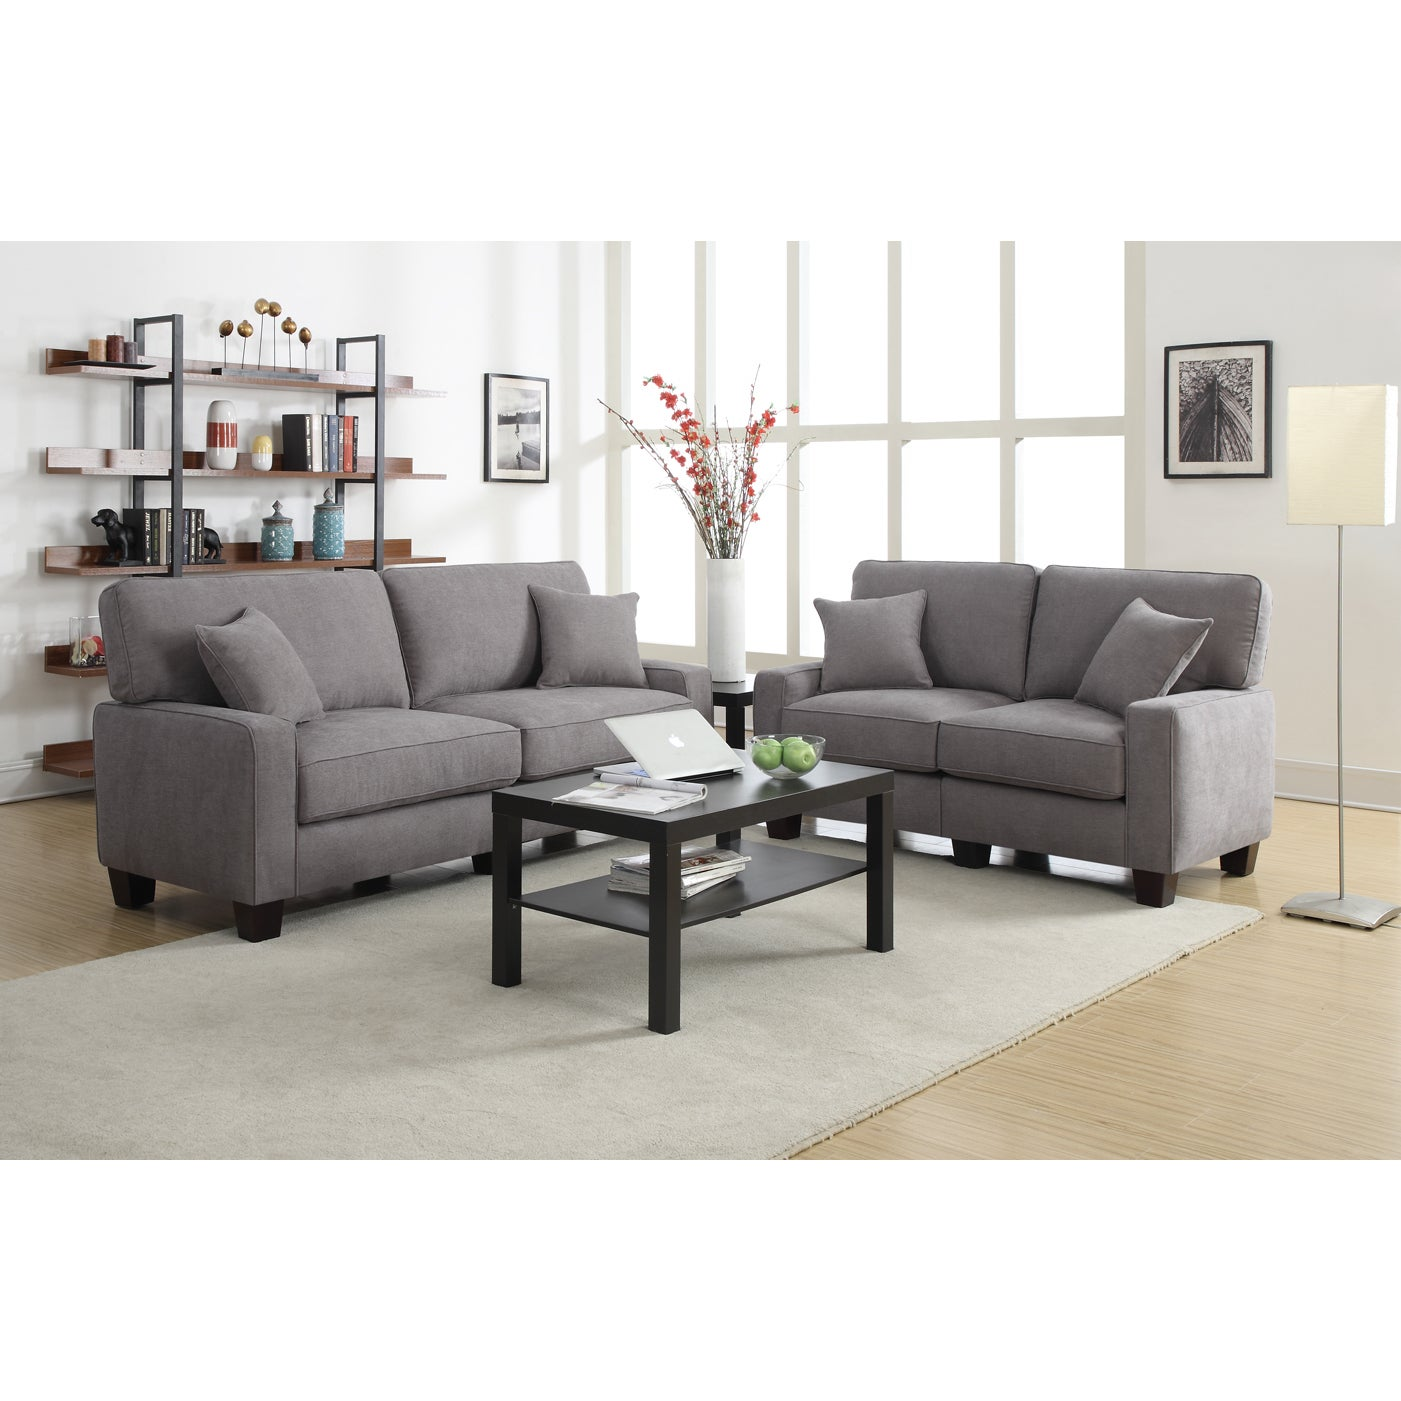 hughes furniture lfchs lfchsrfs sofa chaise w couch upholstery item rotmans serta sectional jitterbug number by products